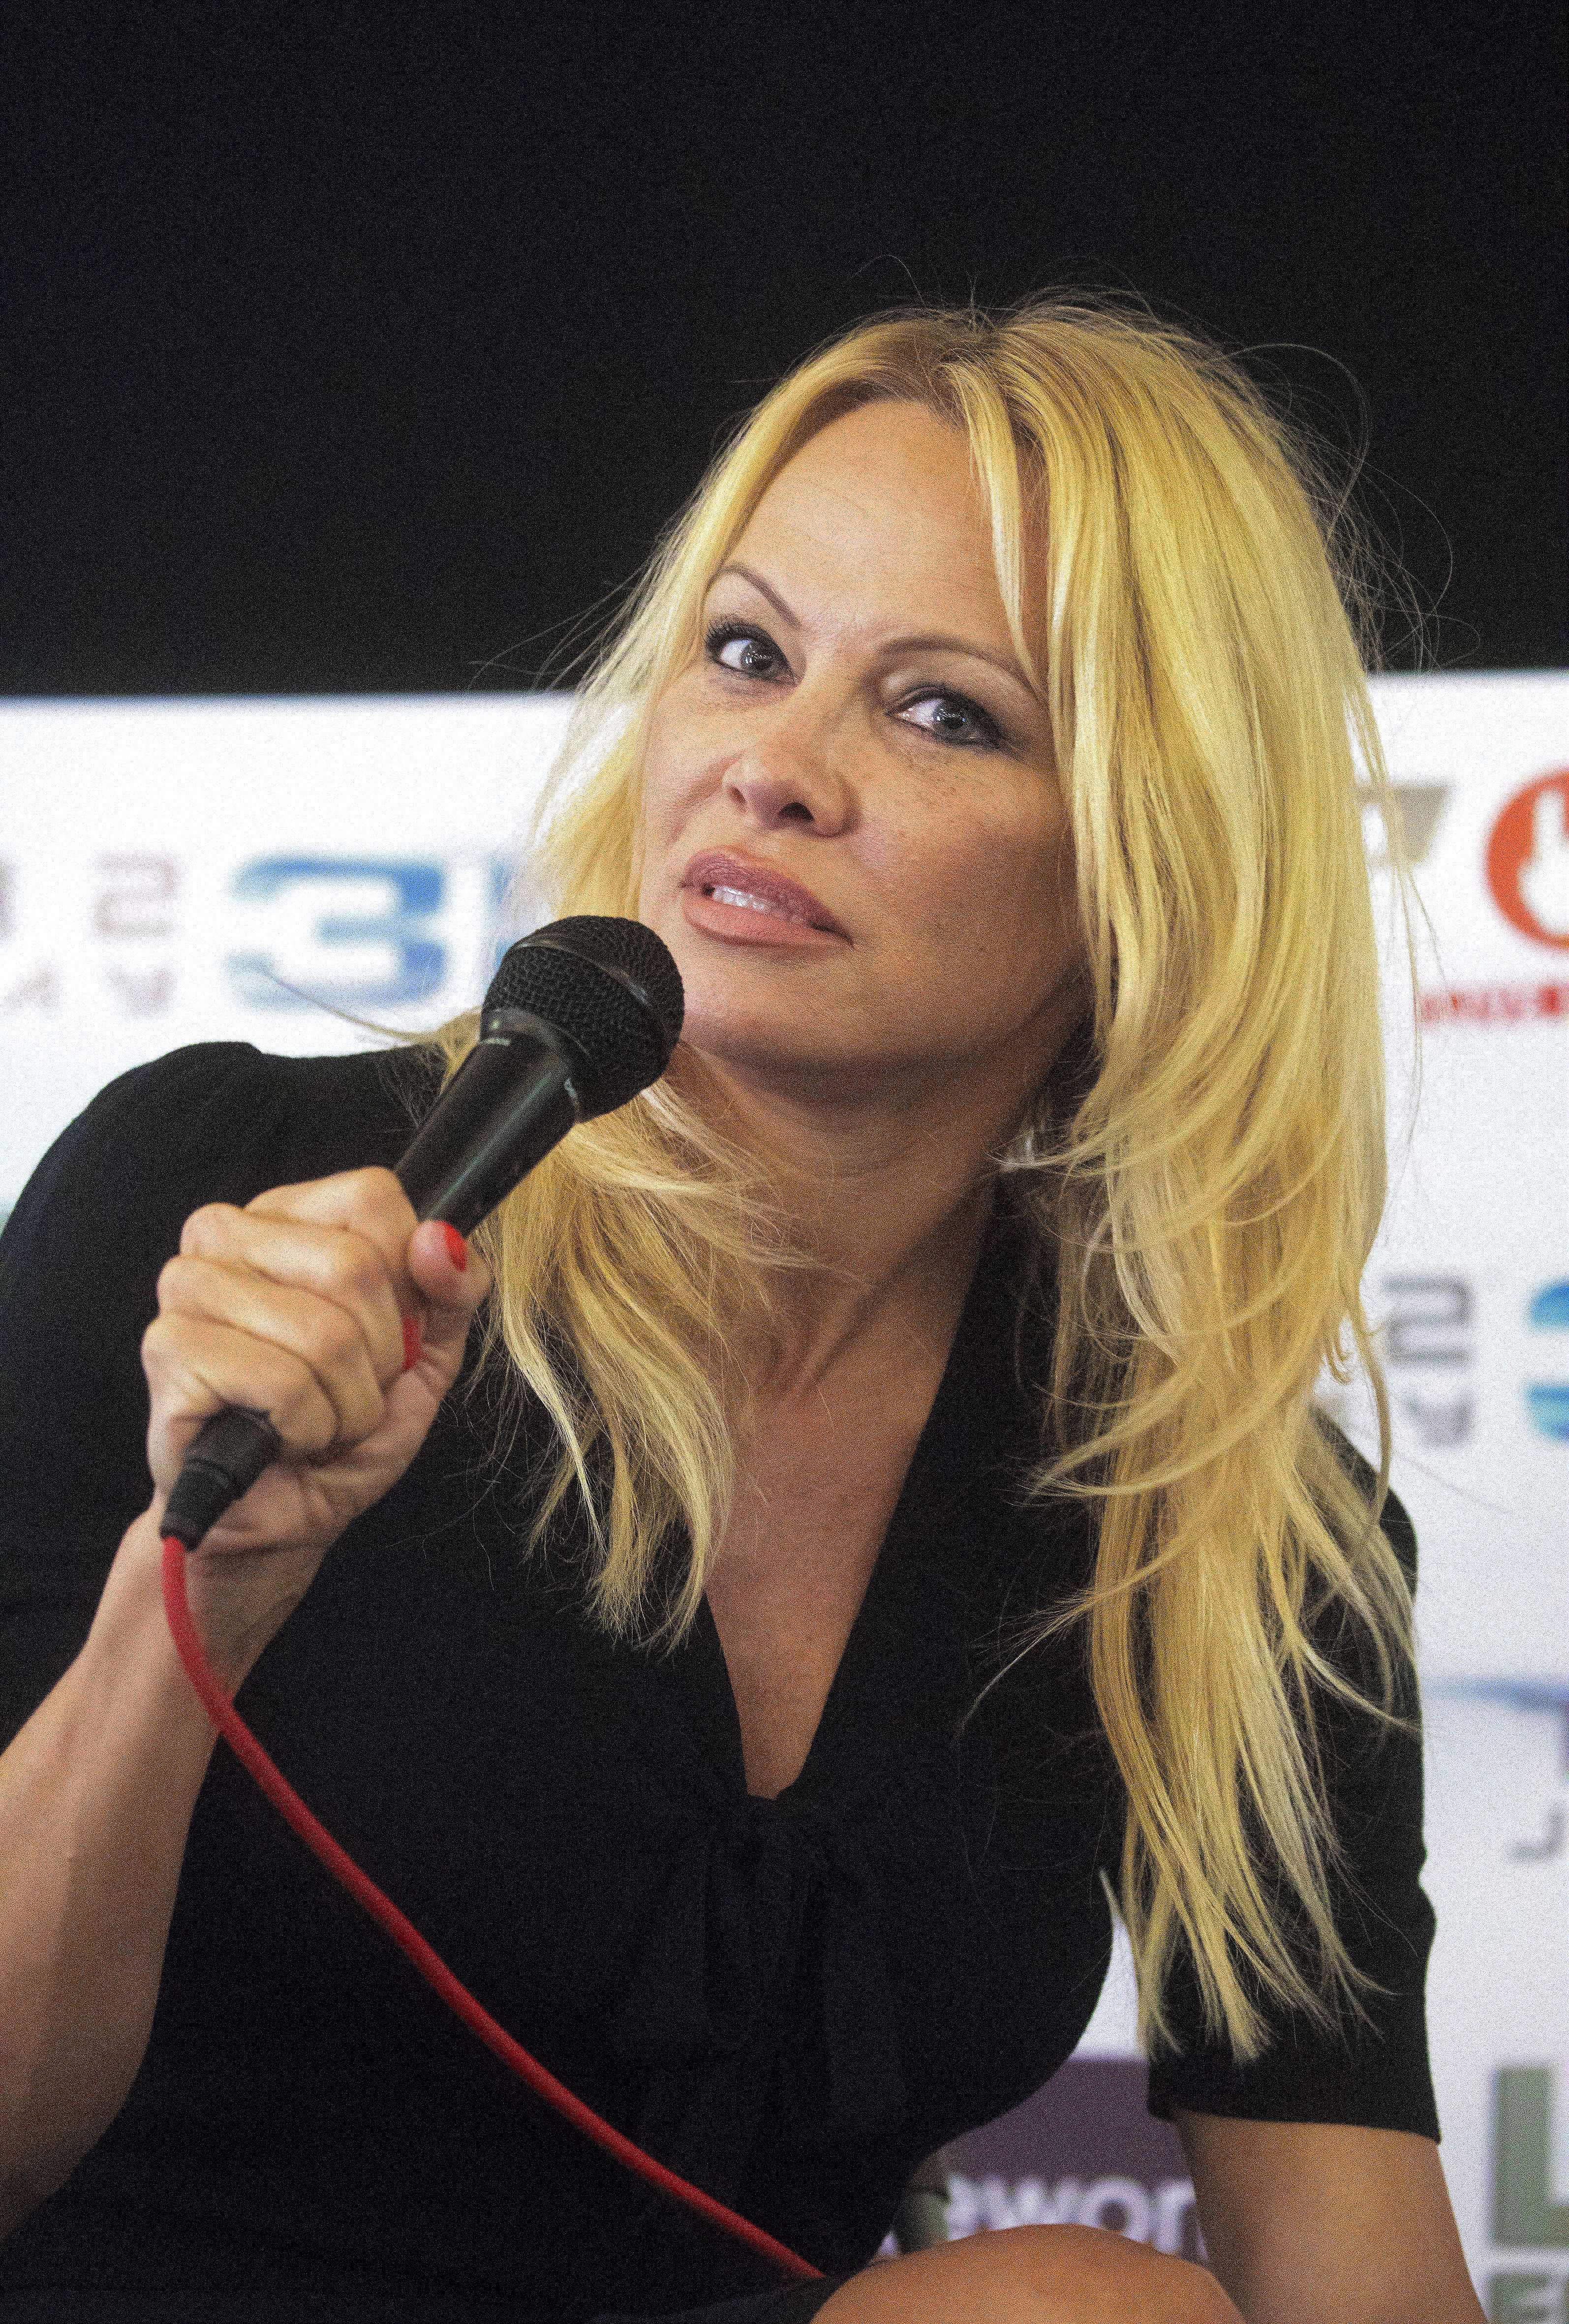 Pamela Anderson attends the London Film and Comic Con on July 30, 2017.